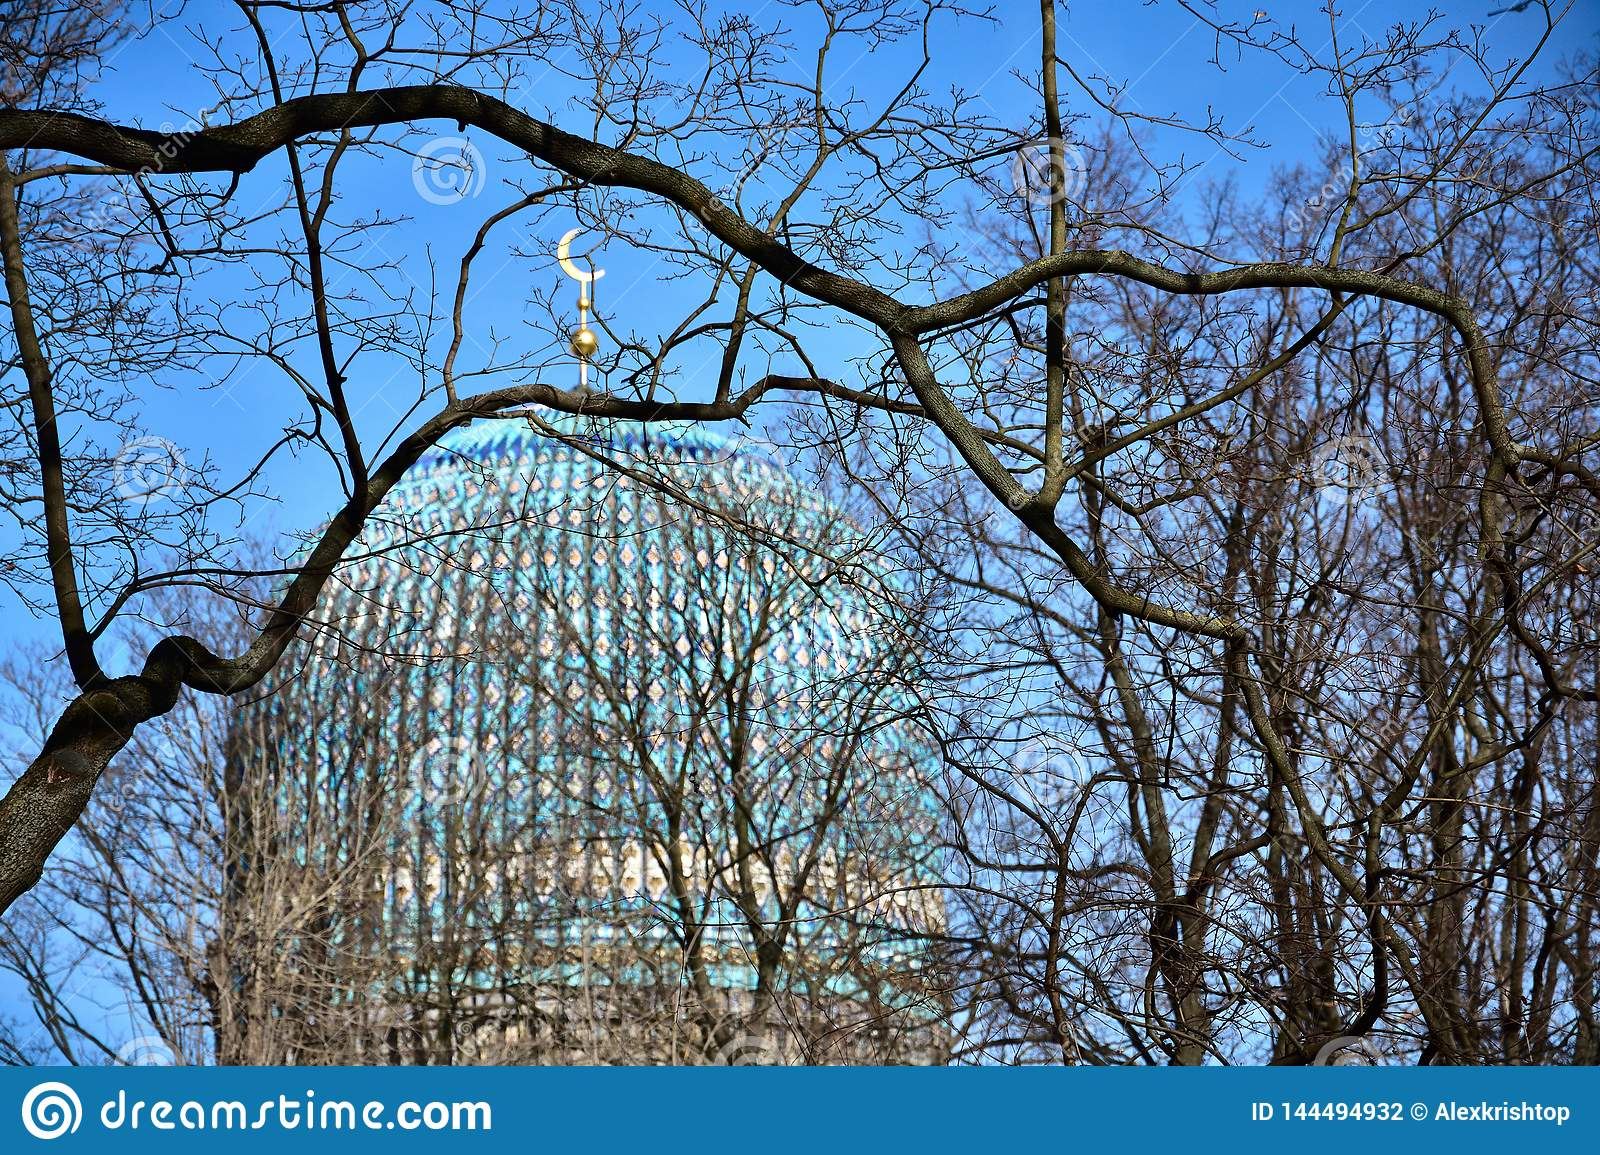 The Saint Petersburg Mosque, view through branches in the spring